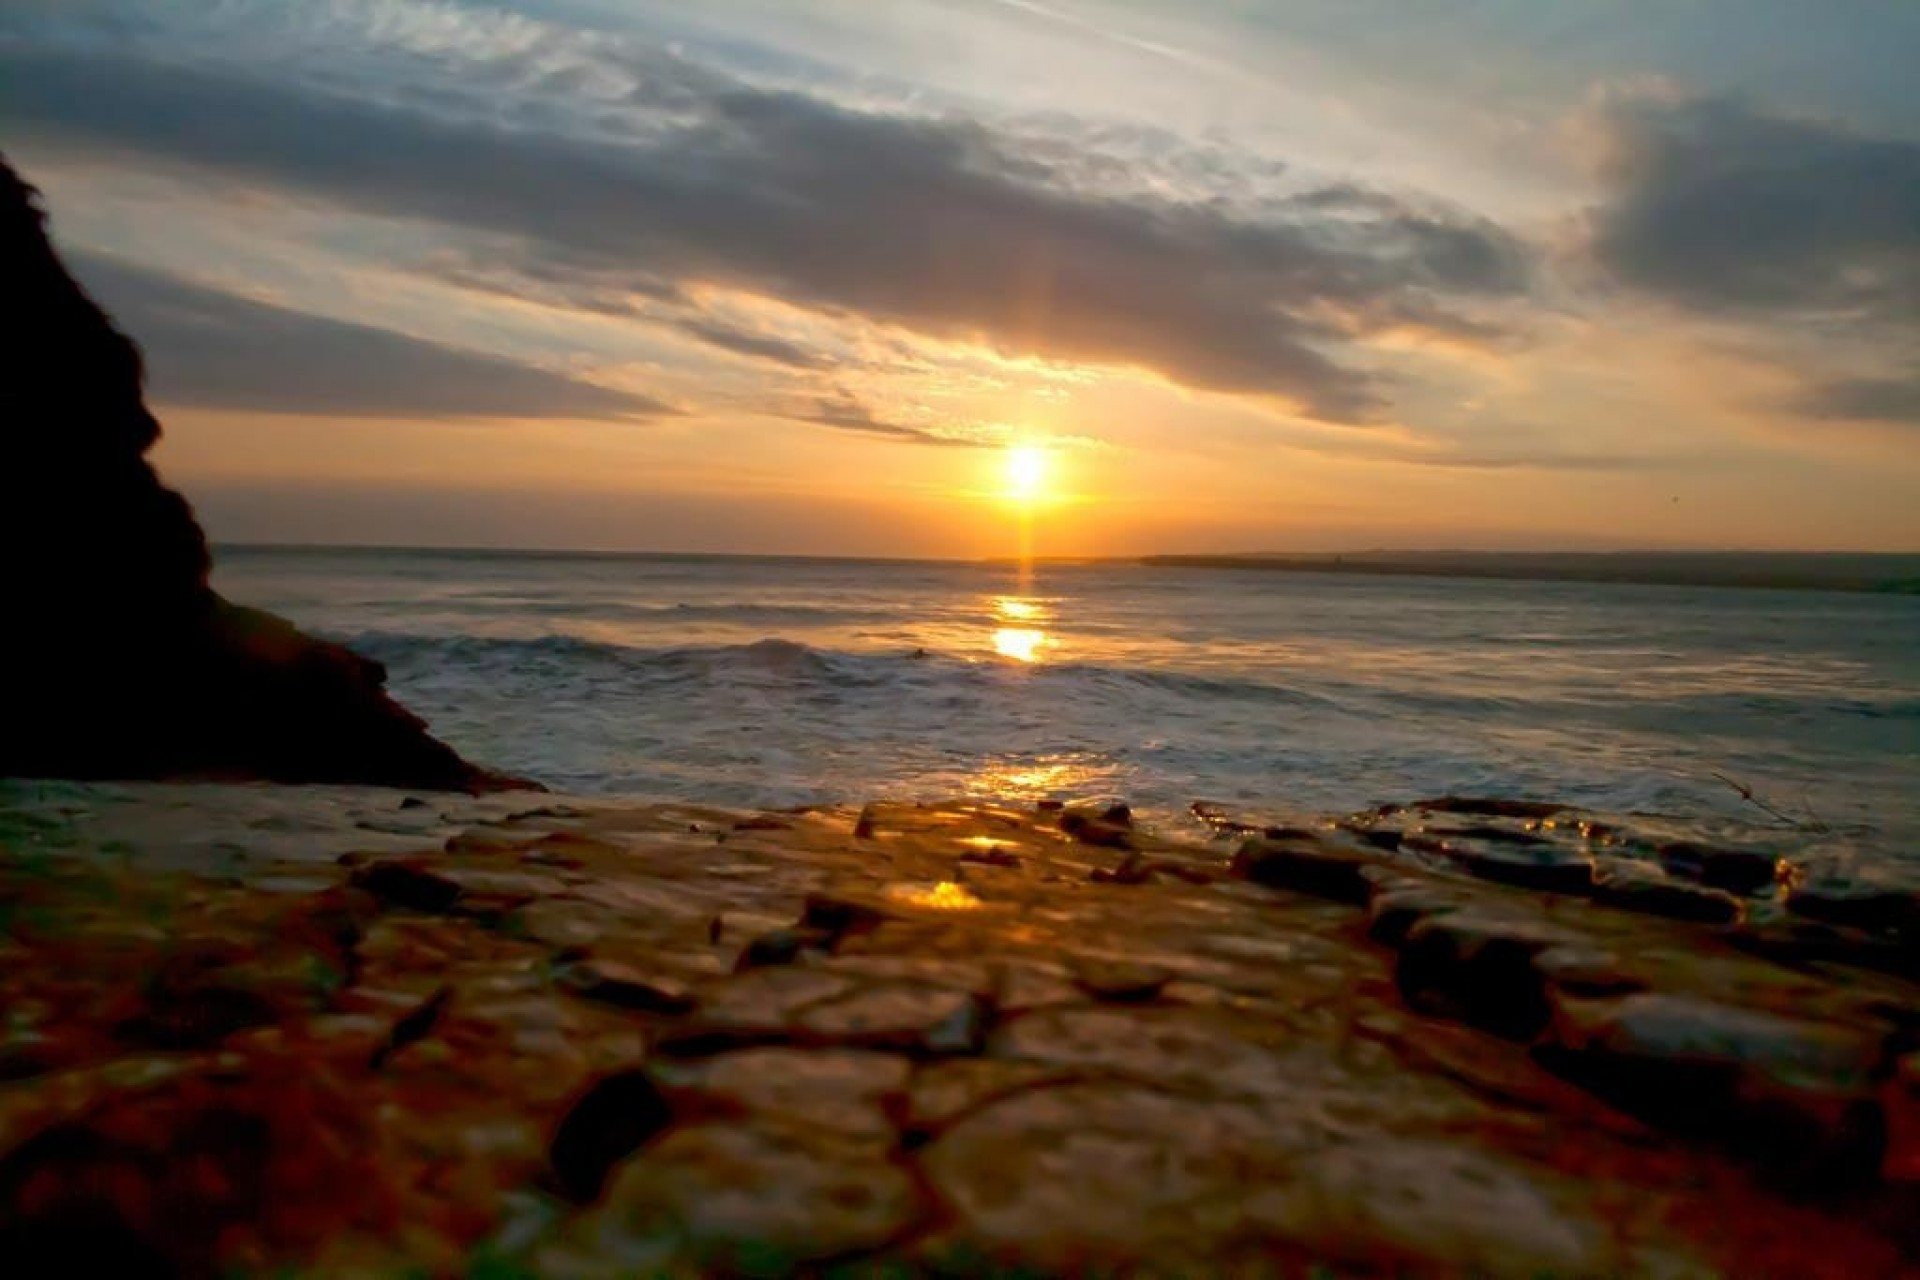 Greg Jordan's photo of Lahinch - Beach